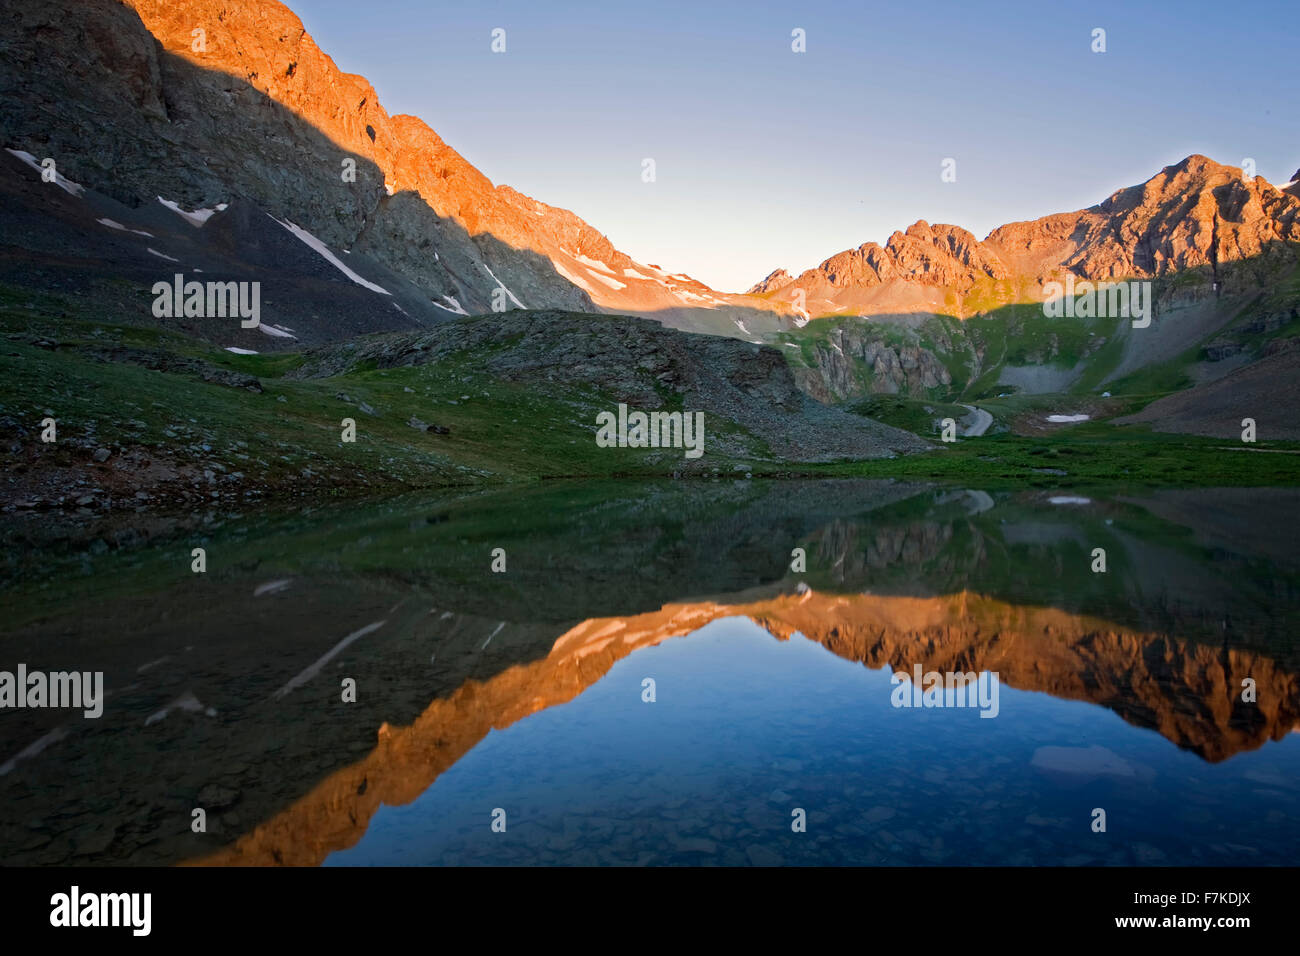 Mountains reflected on pond near Clear Lake, San Juan National Forest, Colorado USA - Stock Image